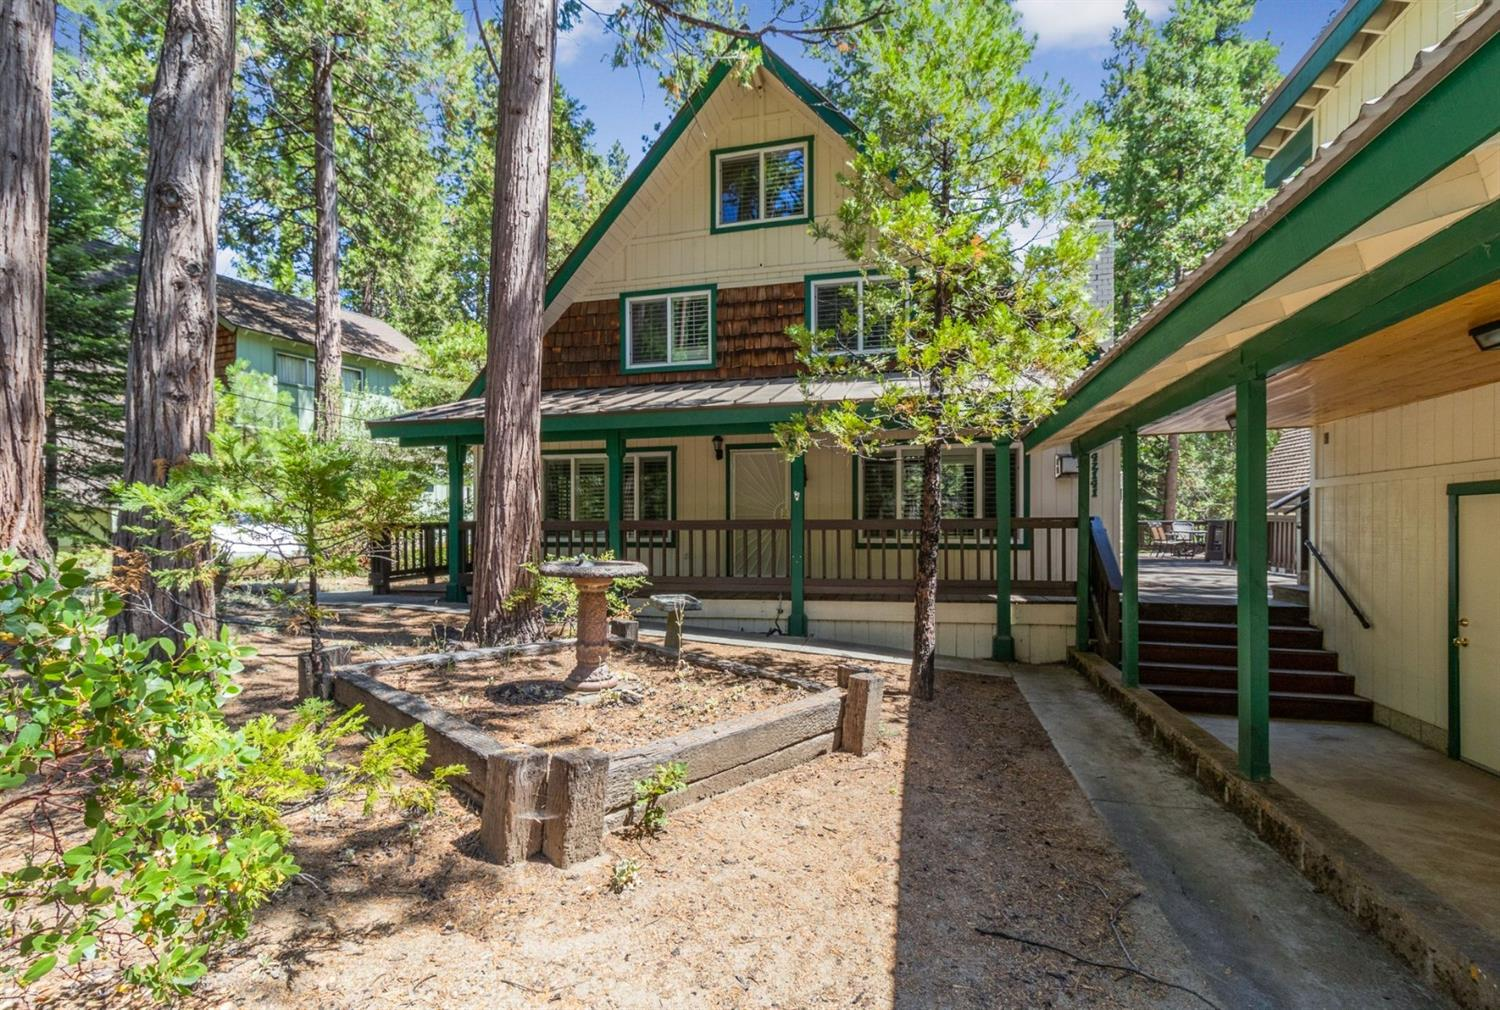 Charming cabin in the East Village! Great location, close to Shaver Village as well as the lake. Open concept kitchen, living, and dining. Kitchen has granite counter tops and stainless appliances. Master bedroom and bathroom on the main level. Upstairs there are 2 more bedrooms with a bathroom and game room.  The 3rd floor attic was converted to large bedroom which can sleep 8 or more.  Large outdoor porch areas, great for entertaining. There is a cozy guest house with updated bathroom and loft bedroom. Large workshop and/or storage area over 3-car garage. Ample parking with large paved area for your guests. Home has dual-pane windows and plantation shutters throughout. Come see all it has to offer!